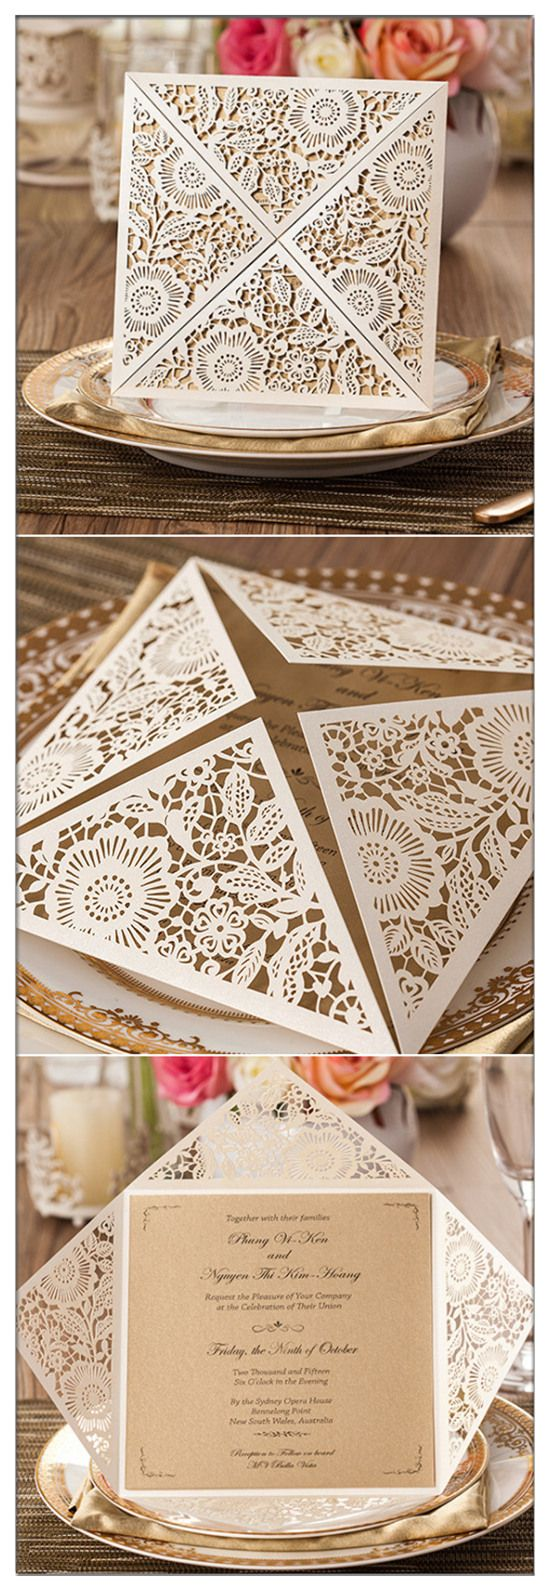 elegant and rustic laser cut wedding invitations for country themed wedding ideas